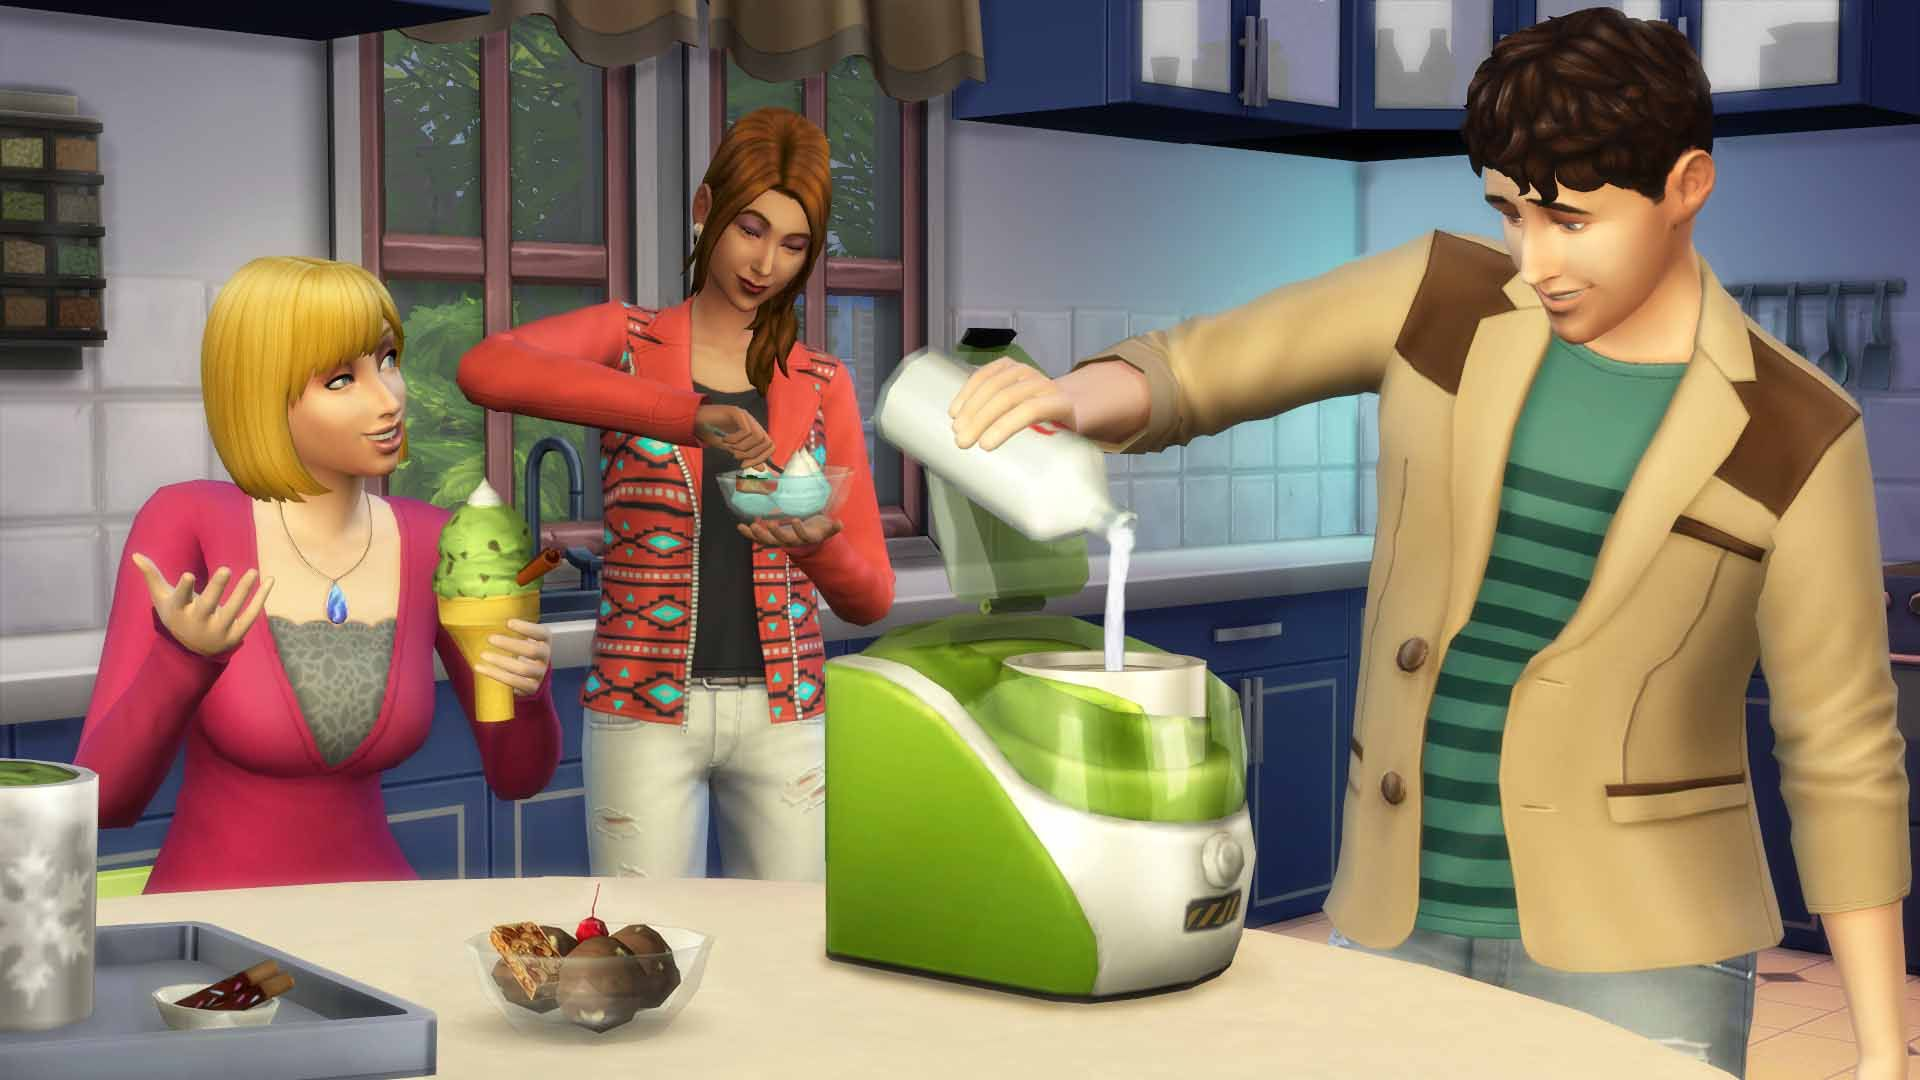 The Sims 4 + Catalog - Cool Kitchen Stuff (Warranty)